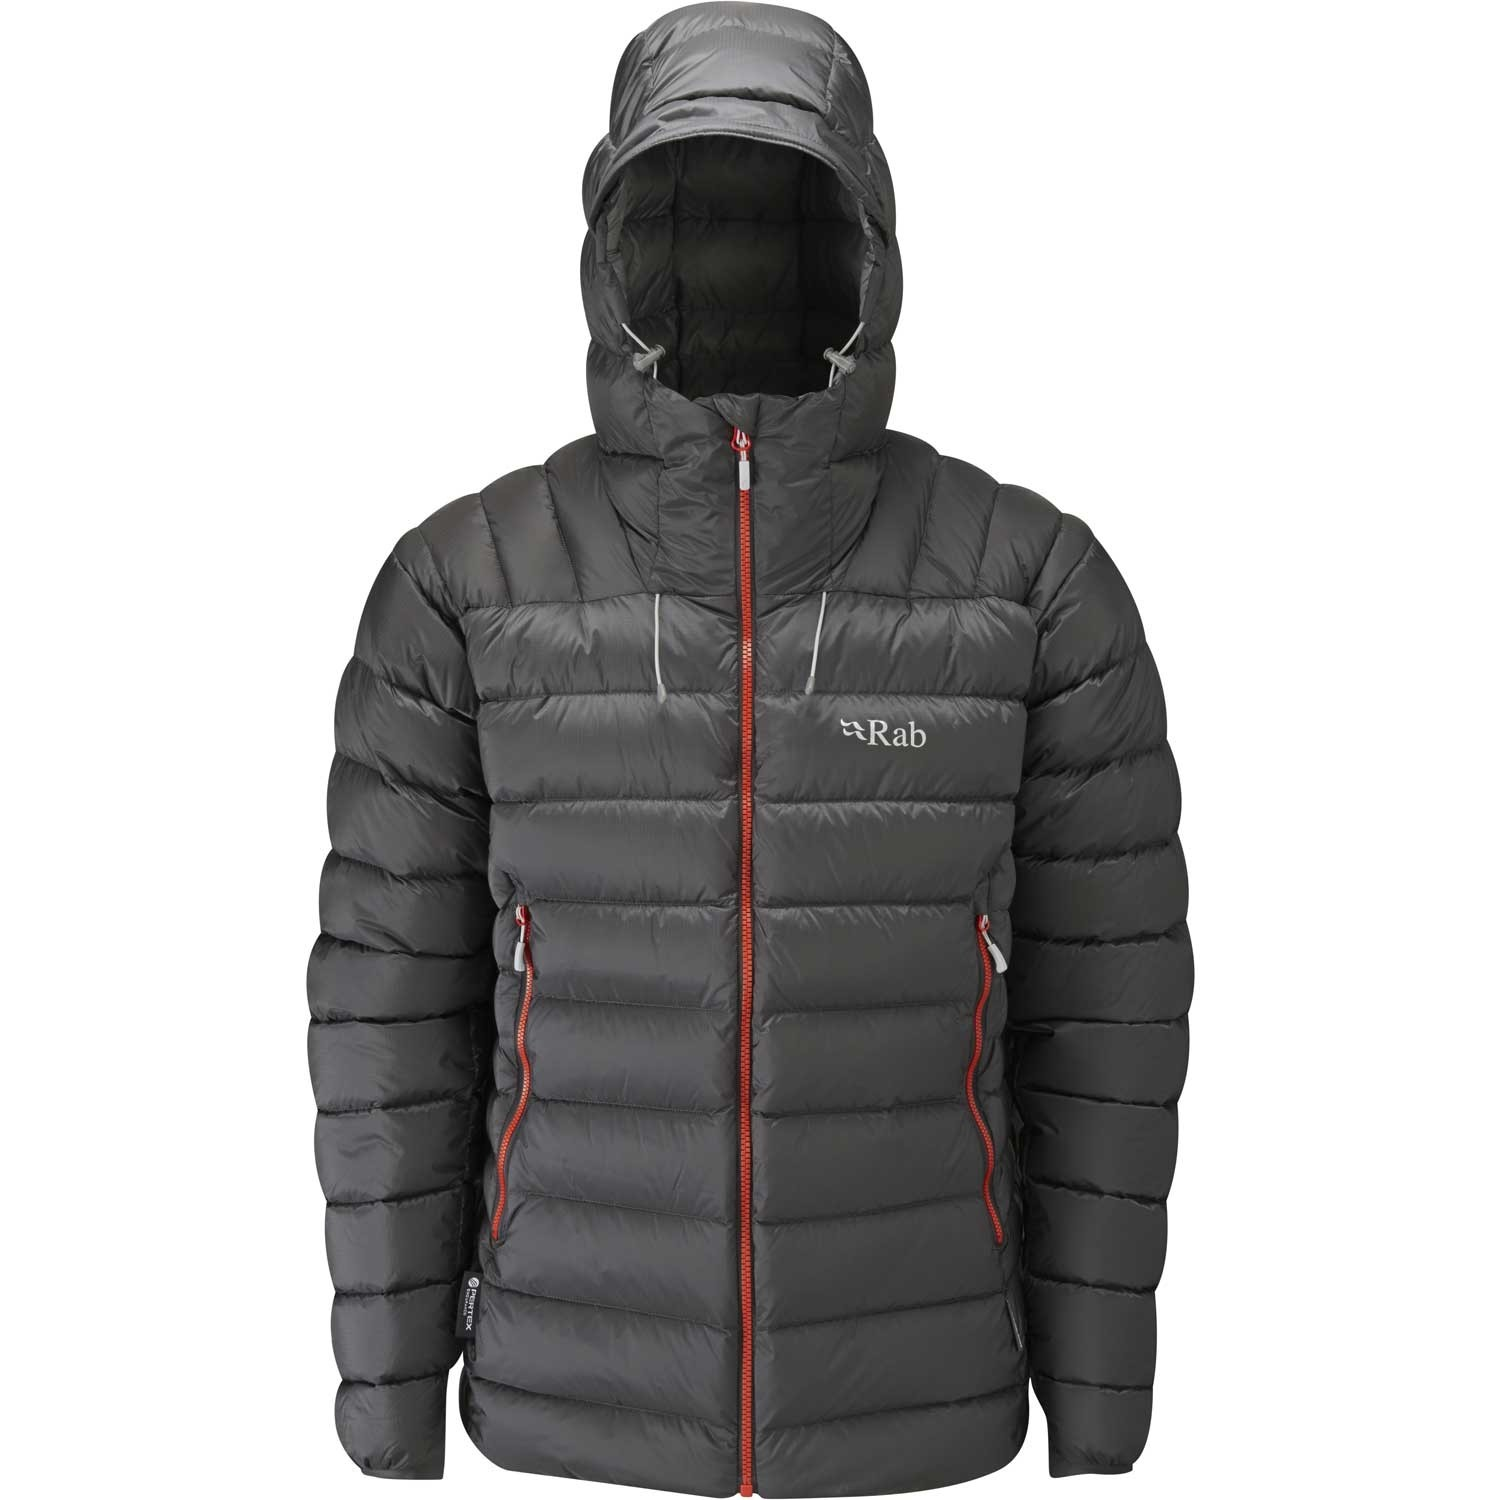 Rab Electron Down Jacket - Graphene/Zinc